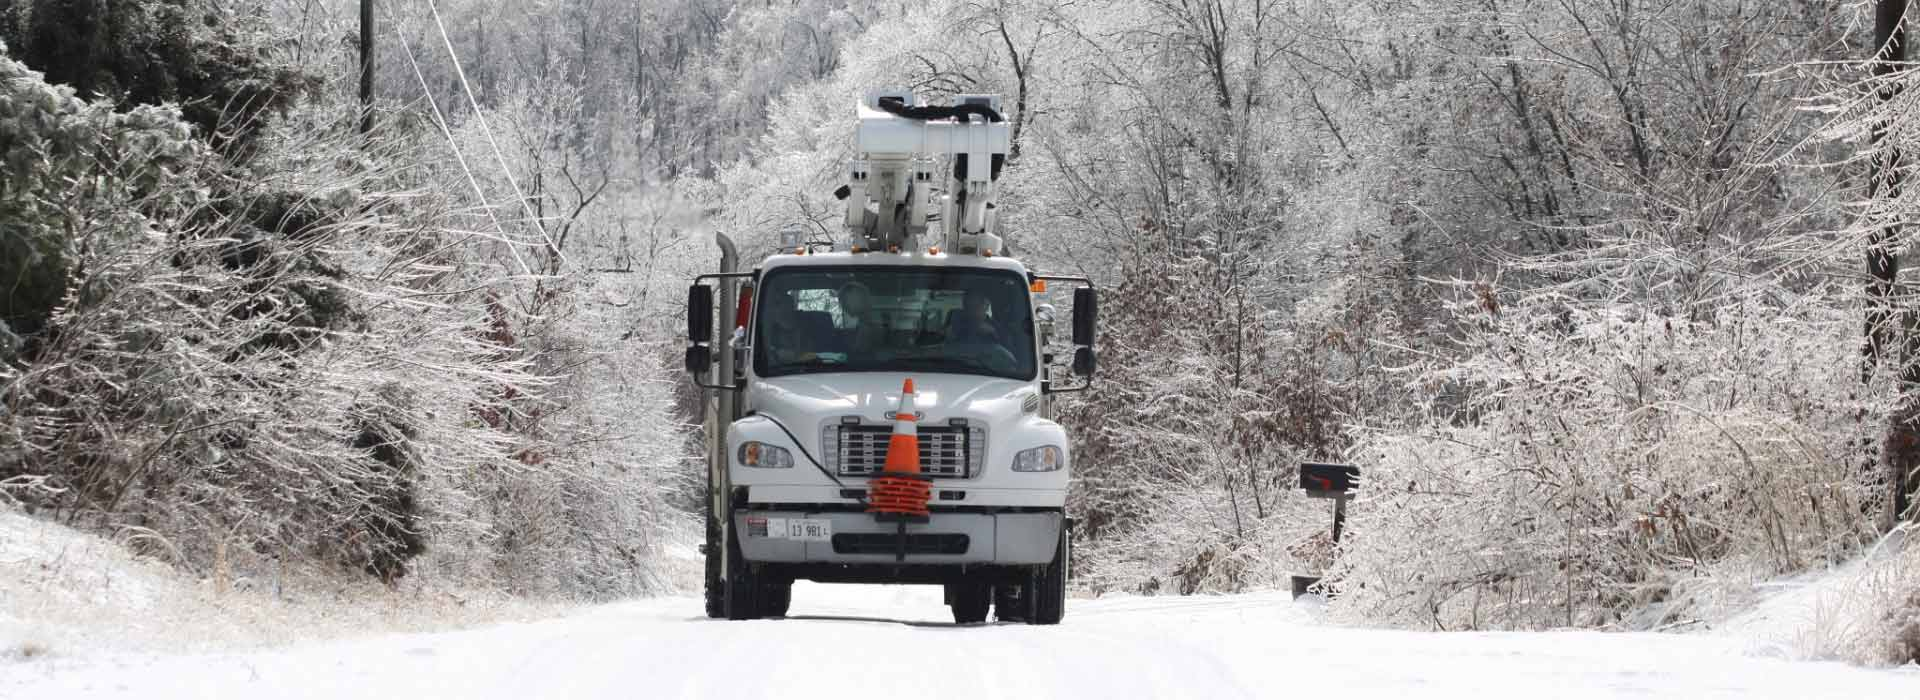 crews-respond-to-ice-outage.jpg